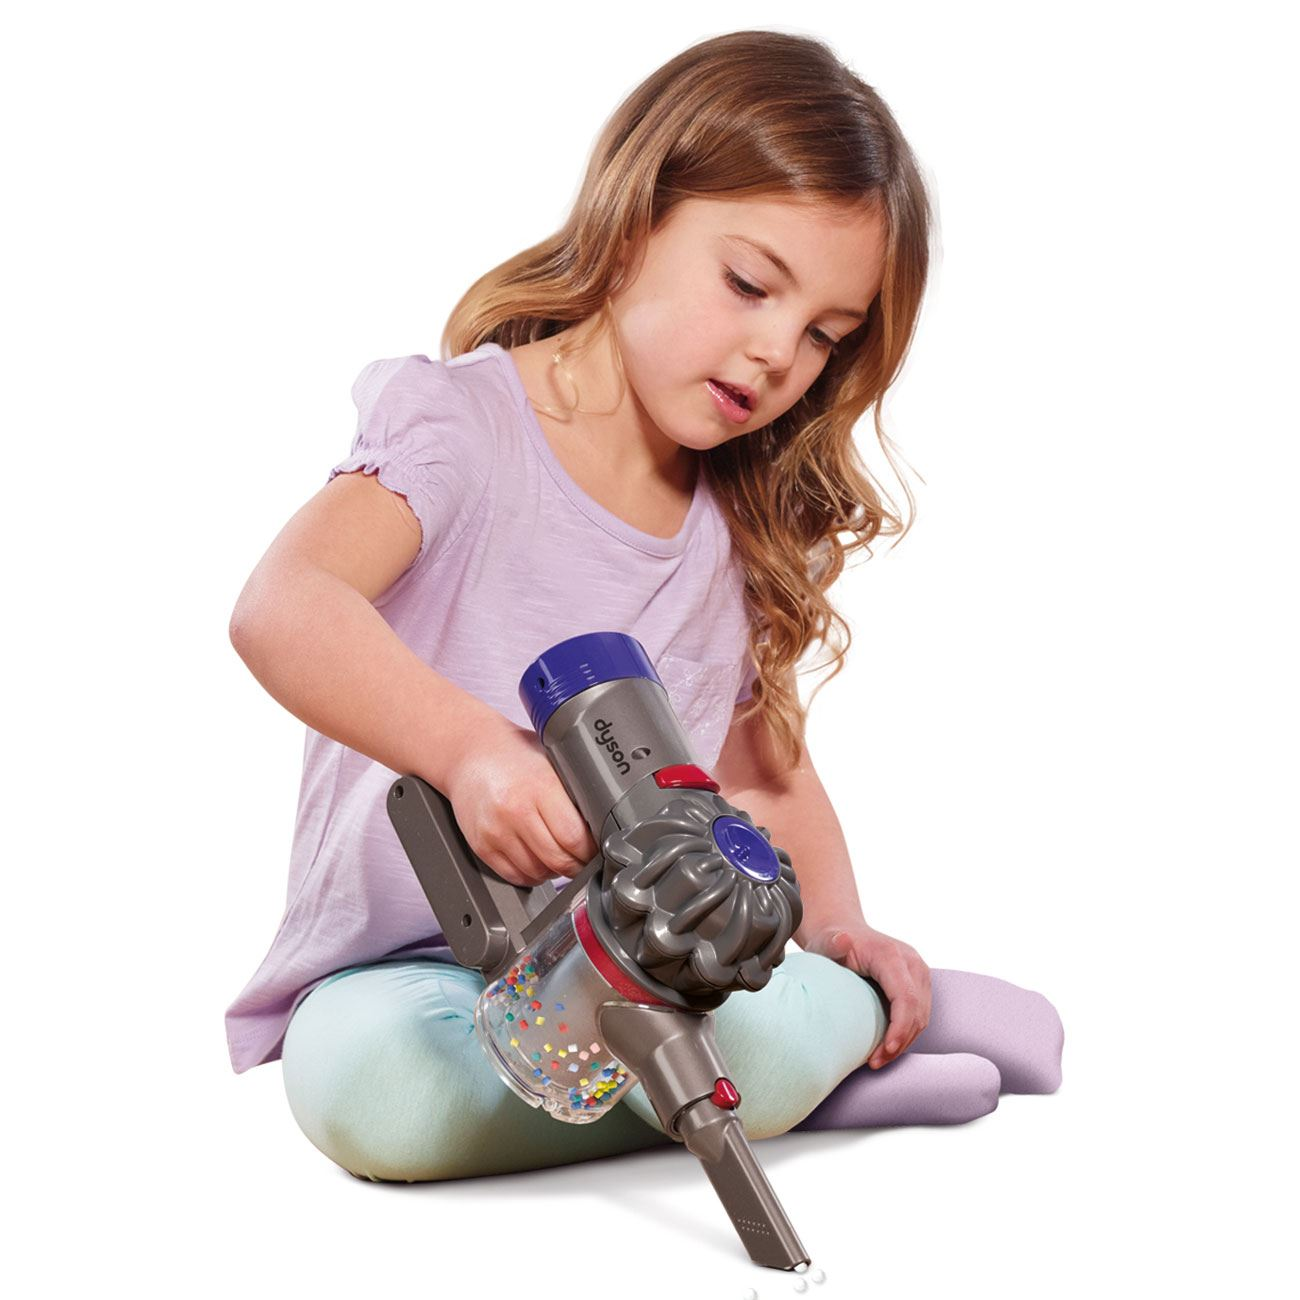 Indexbild 8 - KIDS VACUUM CLEANERS - LITTLE HENRY HETTY DYSON - KIDS CHILDRENS ROLE PLAY